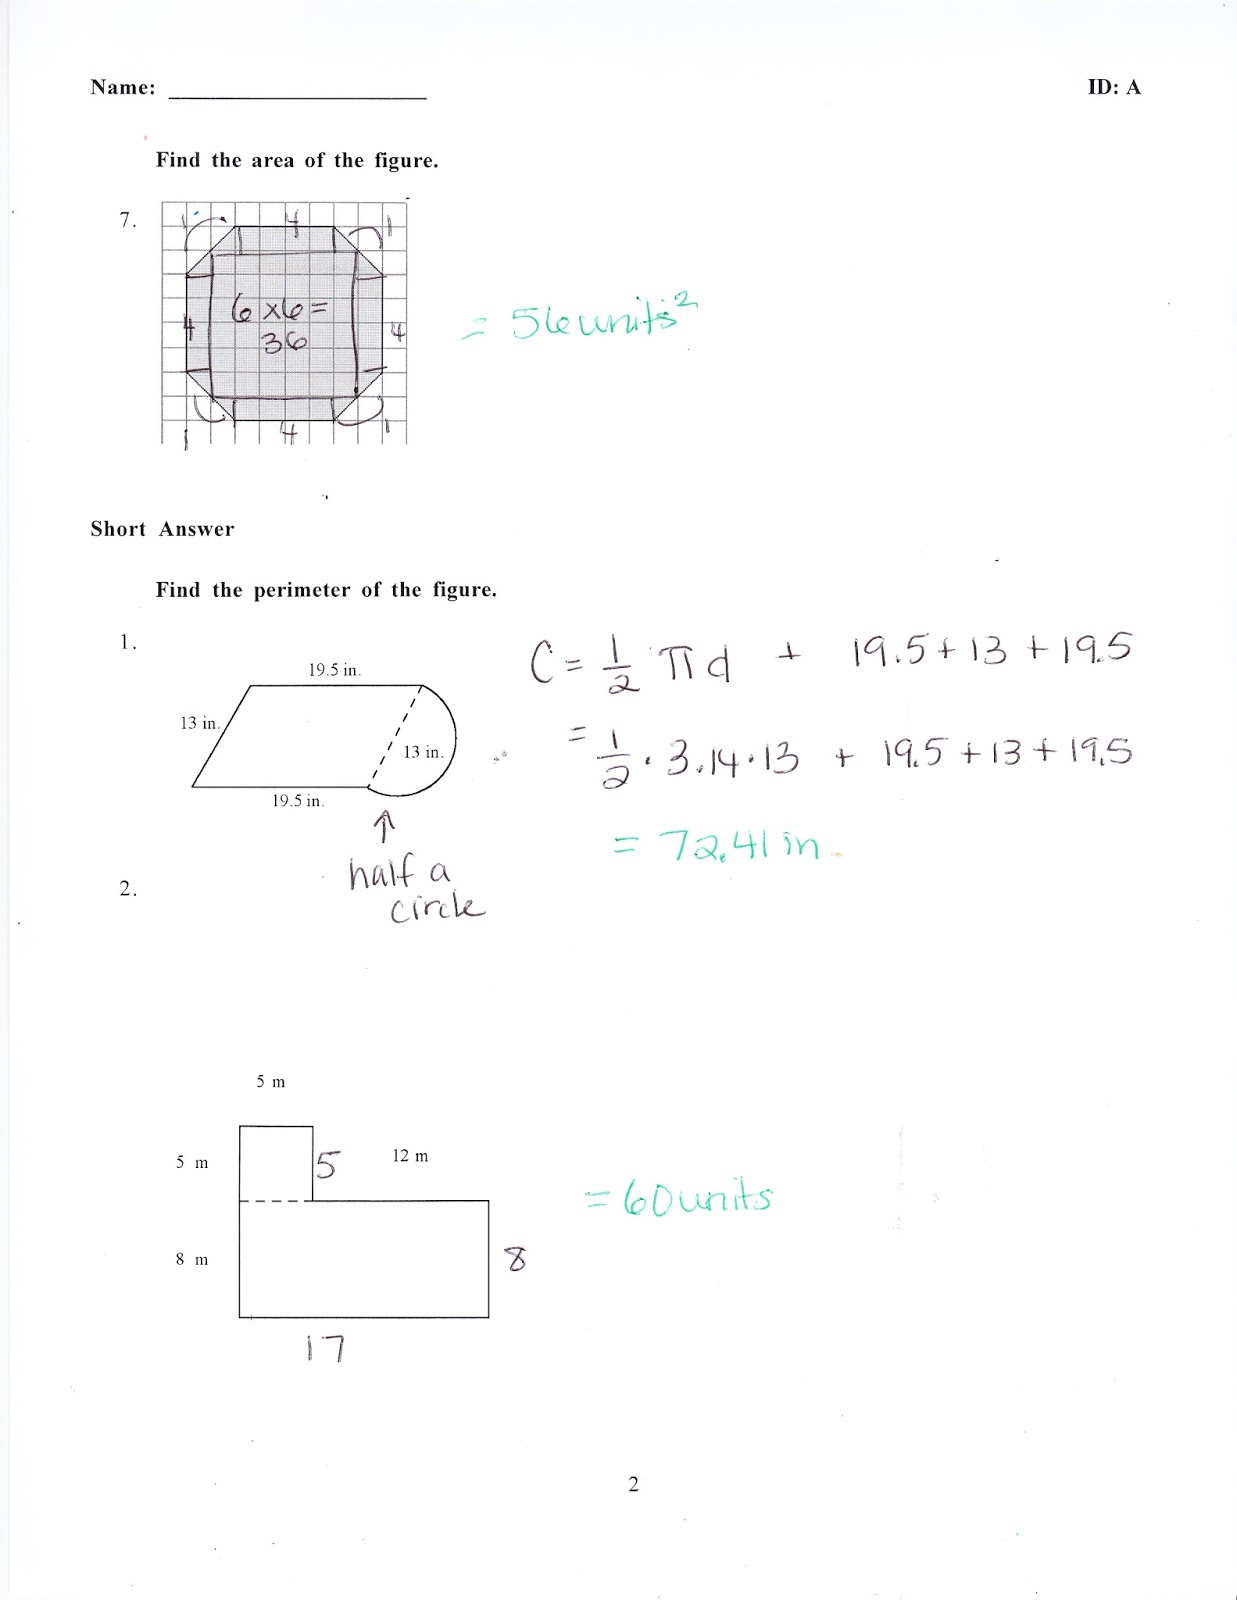 Ms. Jean's Classroom Blog: Math 7 Chapter 8 Practice Test